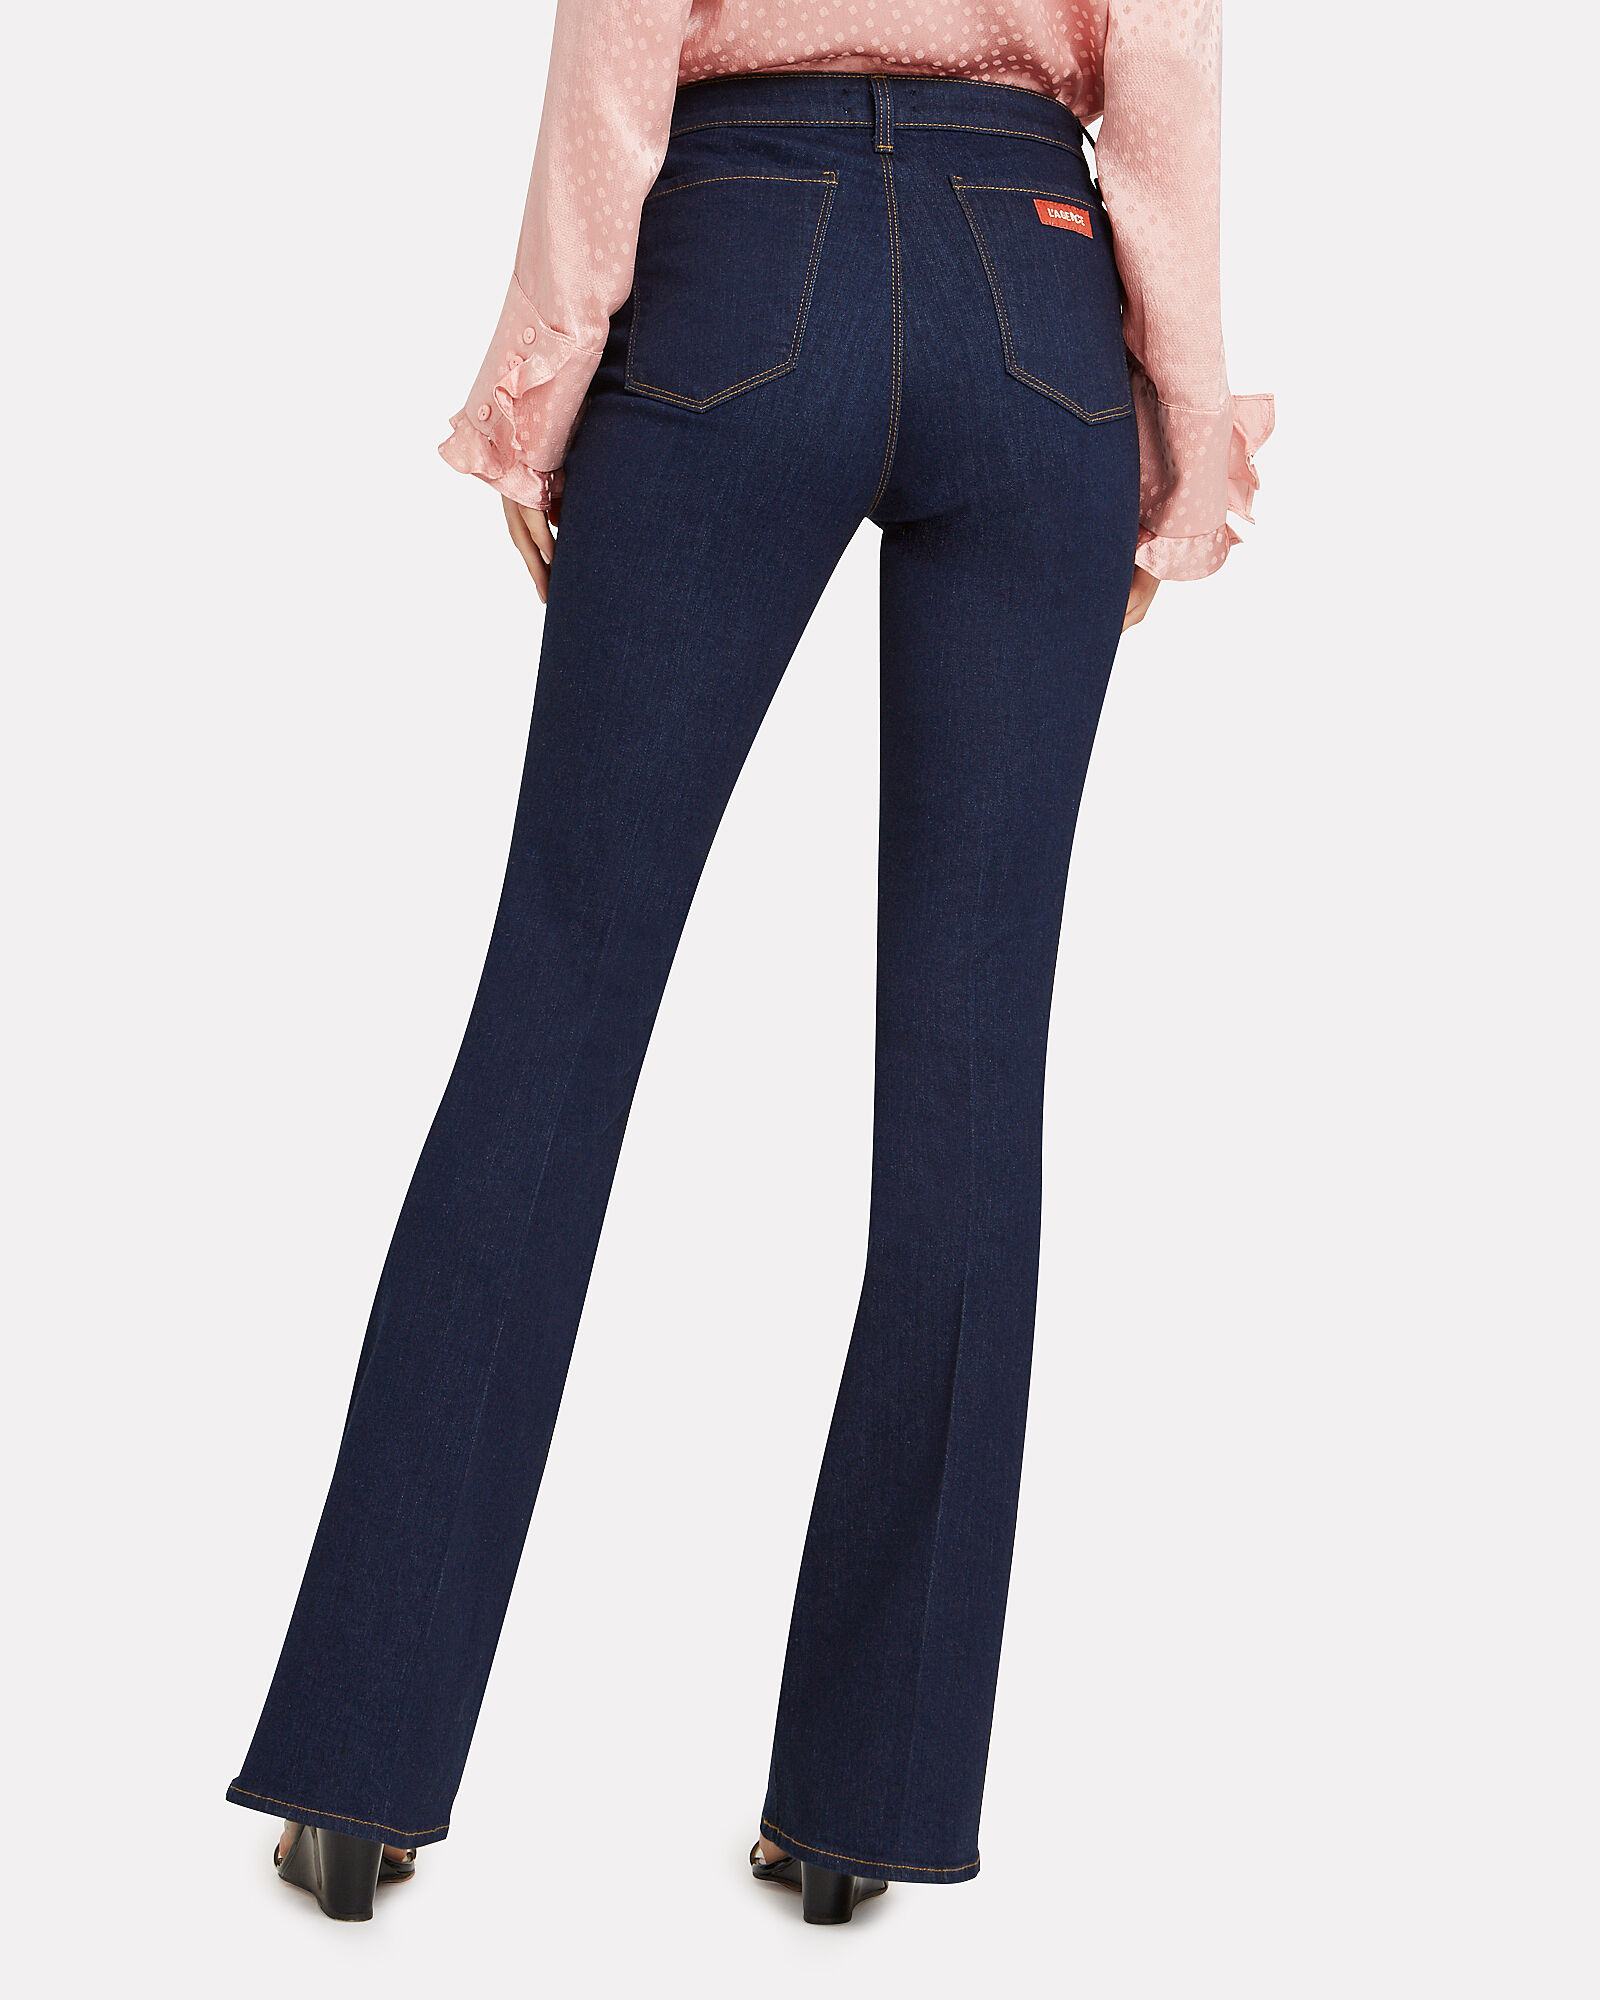 Joplin Flare Jeans, DARK DENIM, hi-res